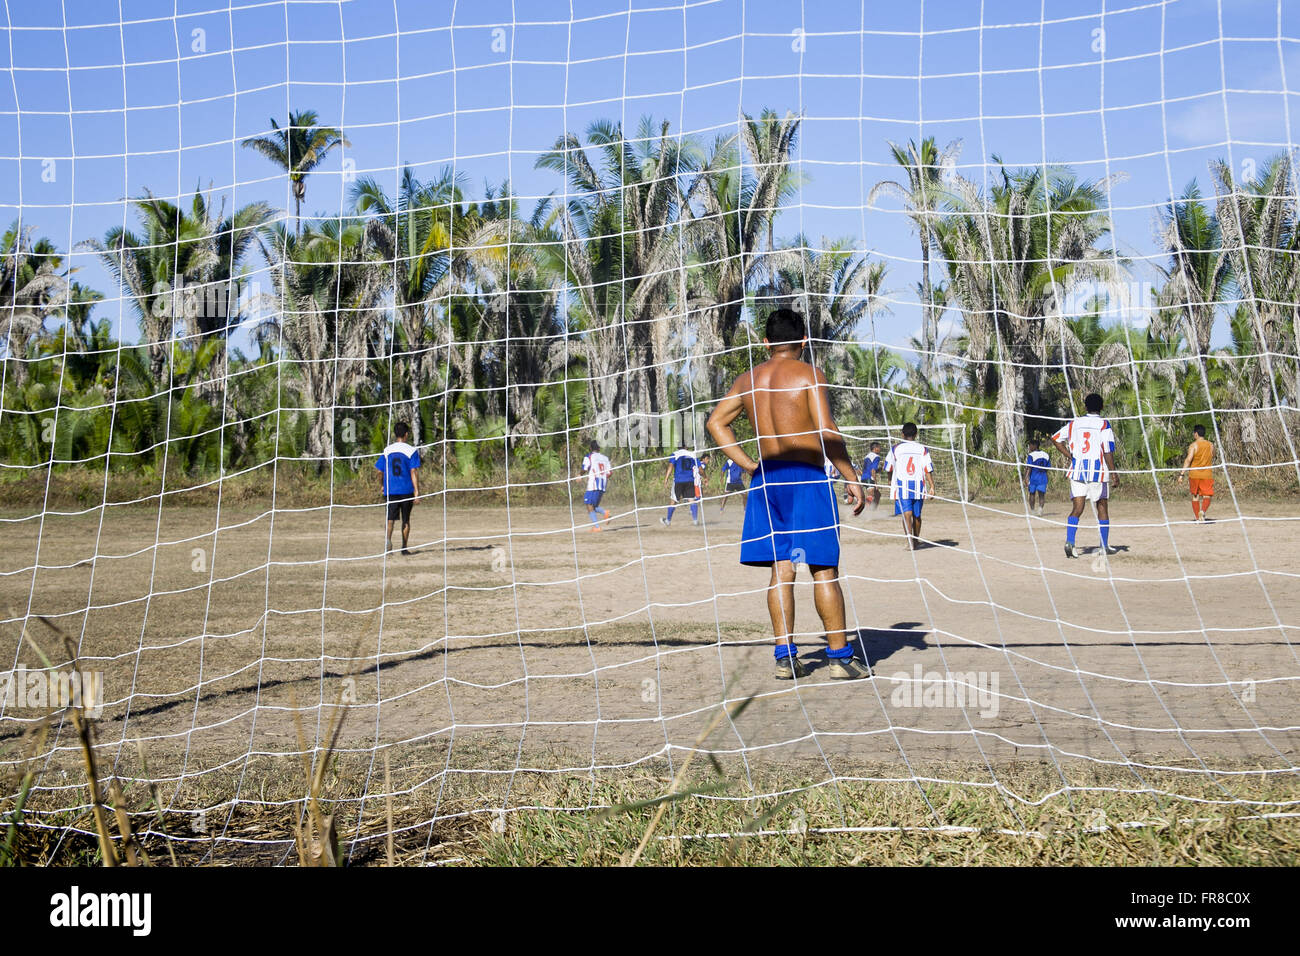 Goalkeeper watching the football match in the countryside with babassu palm trees in the background - Stock Image